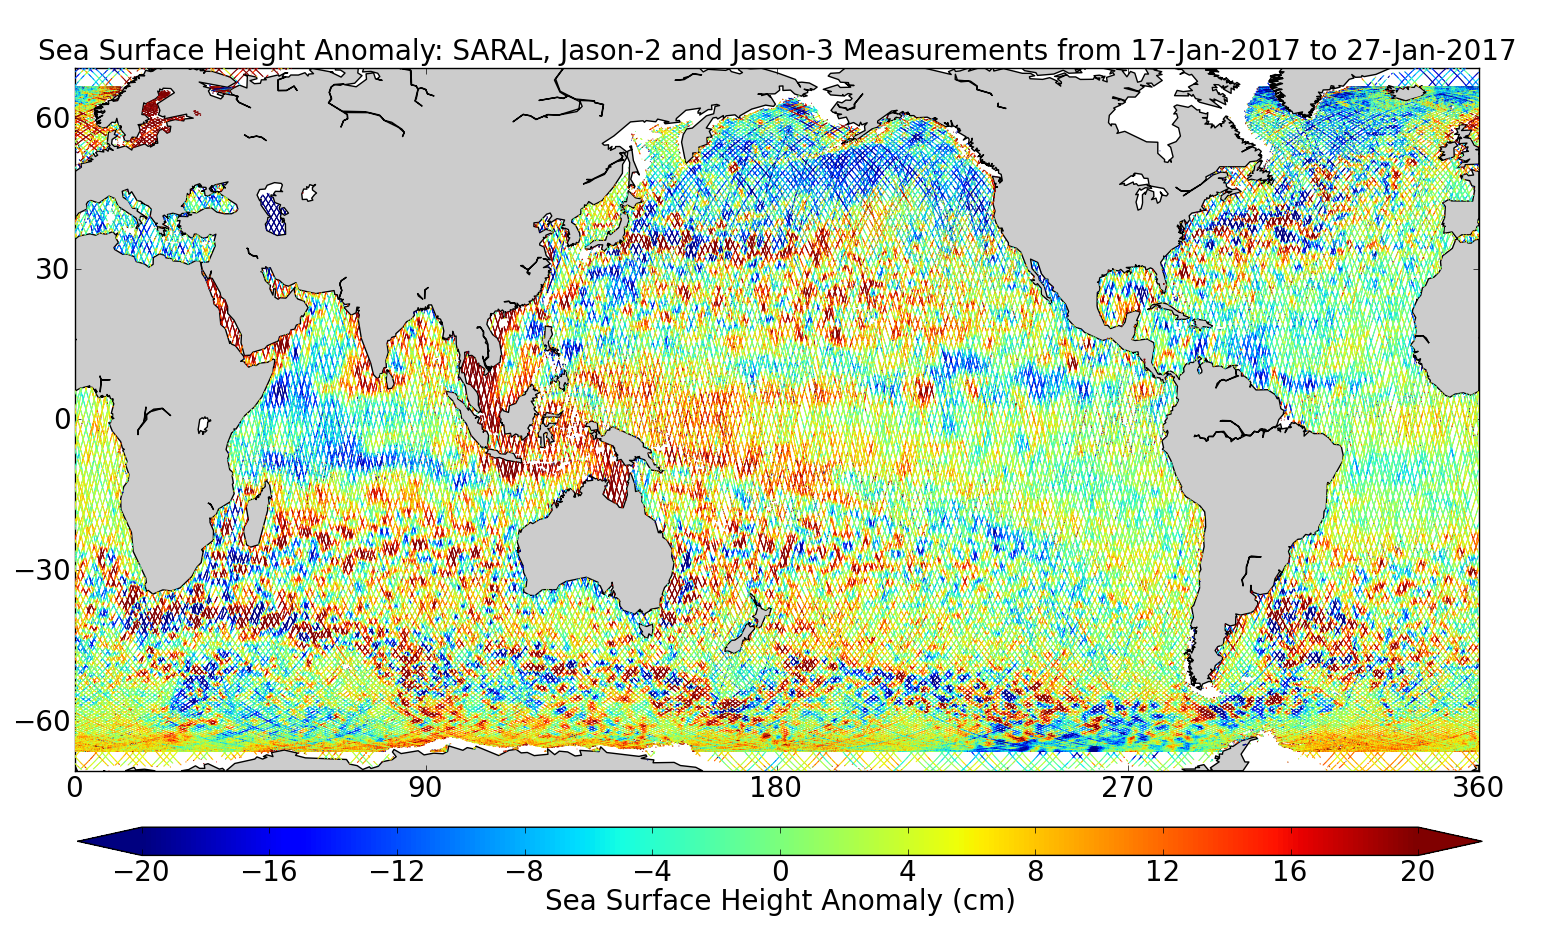 Sea Surface Height Anomaly: SARAL, Jason-2 and Jason-3 Measurements from 17-Jan-2017 to 27-Jan-2017